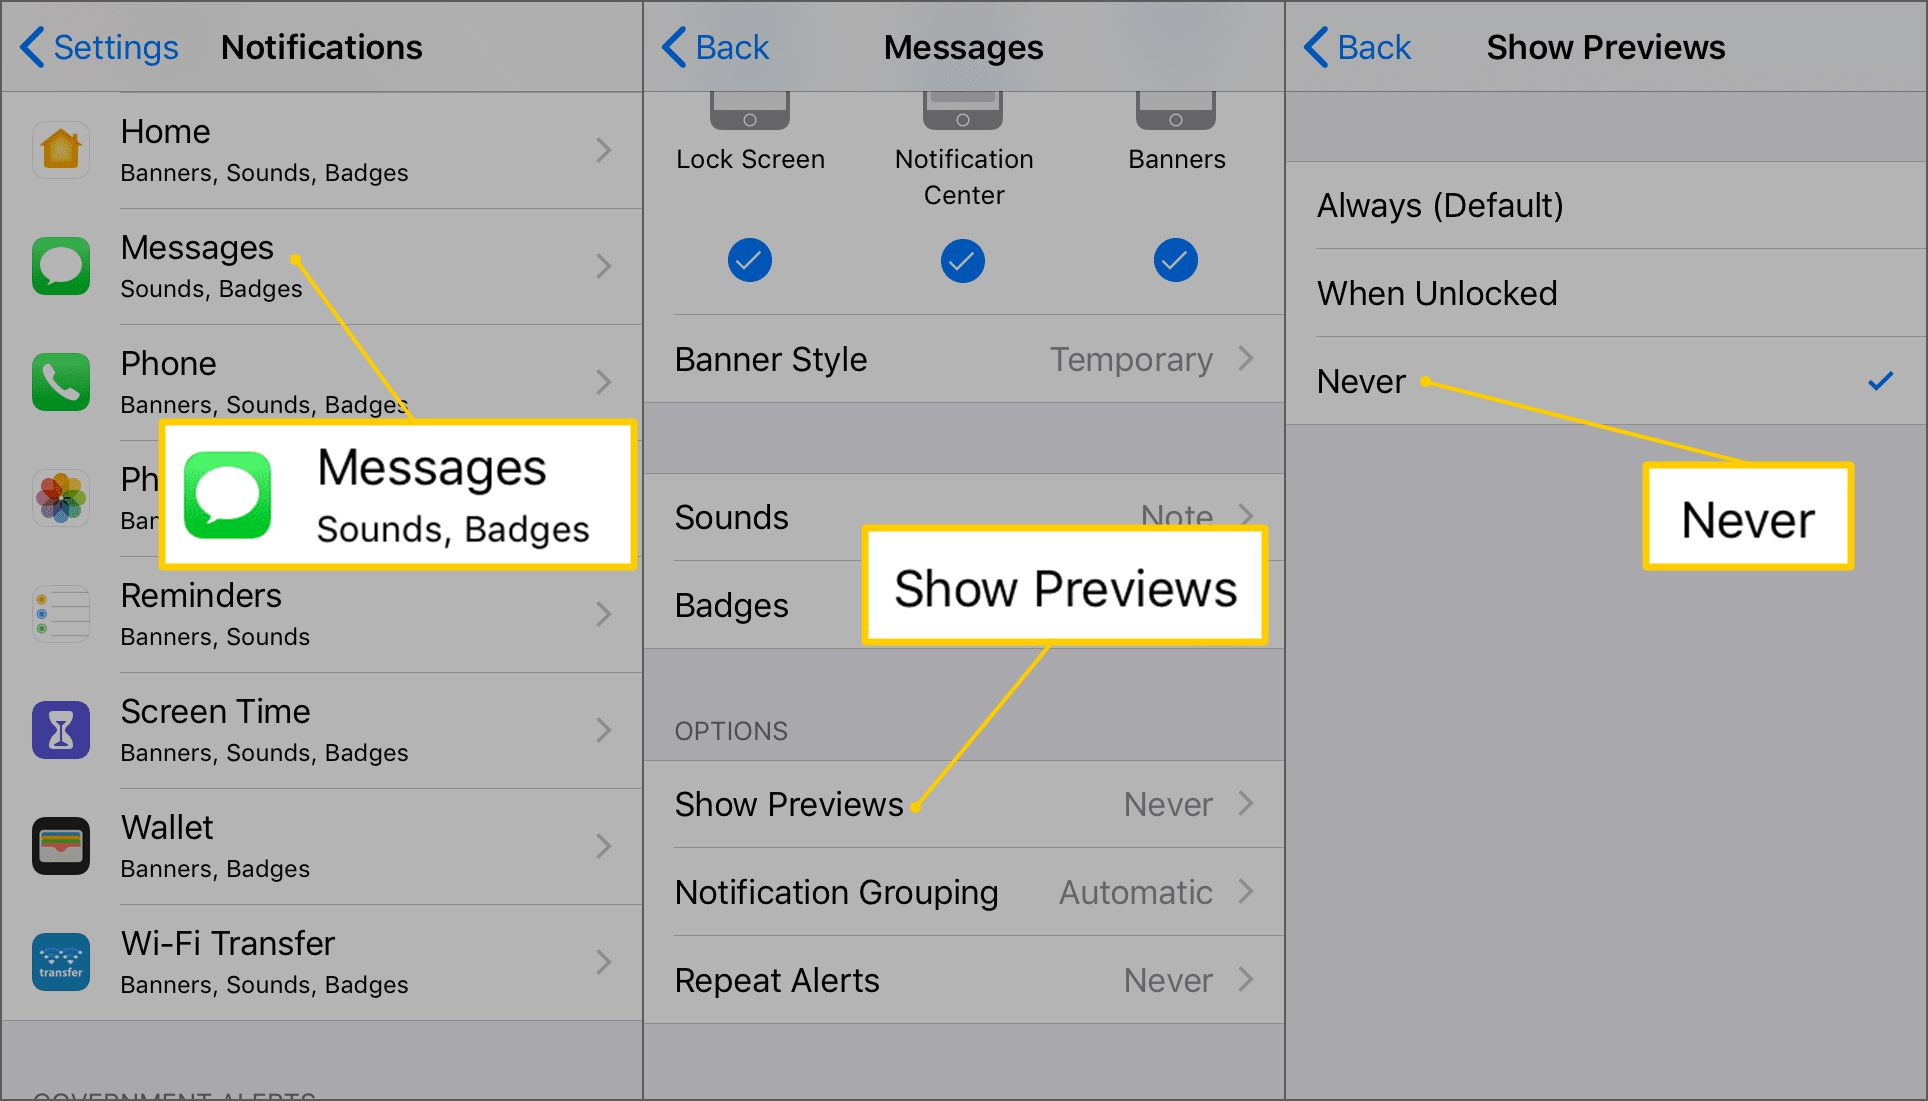 How to Turn off Message Preview on iPhone